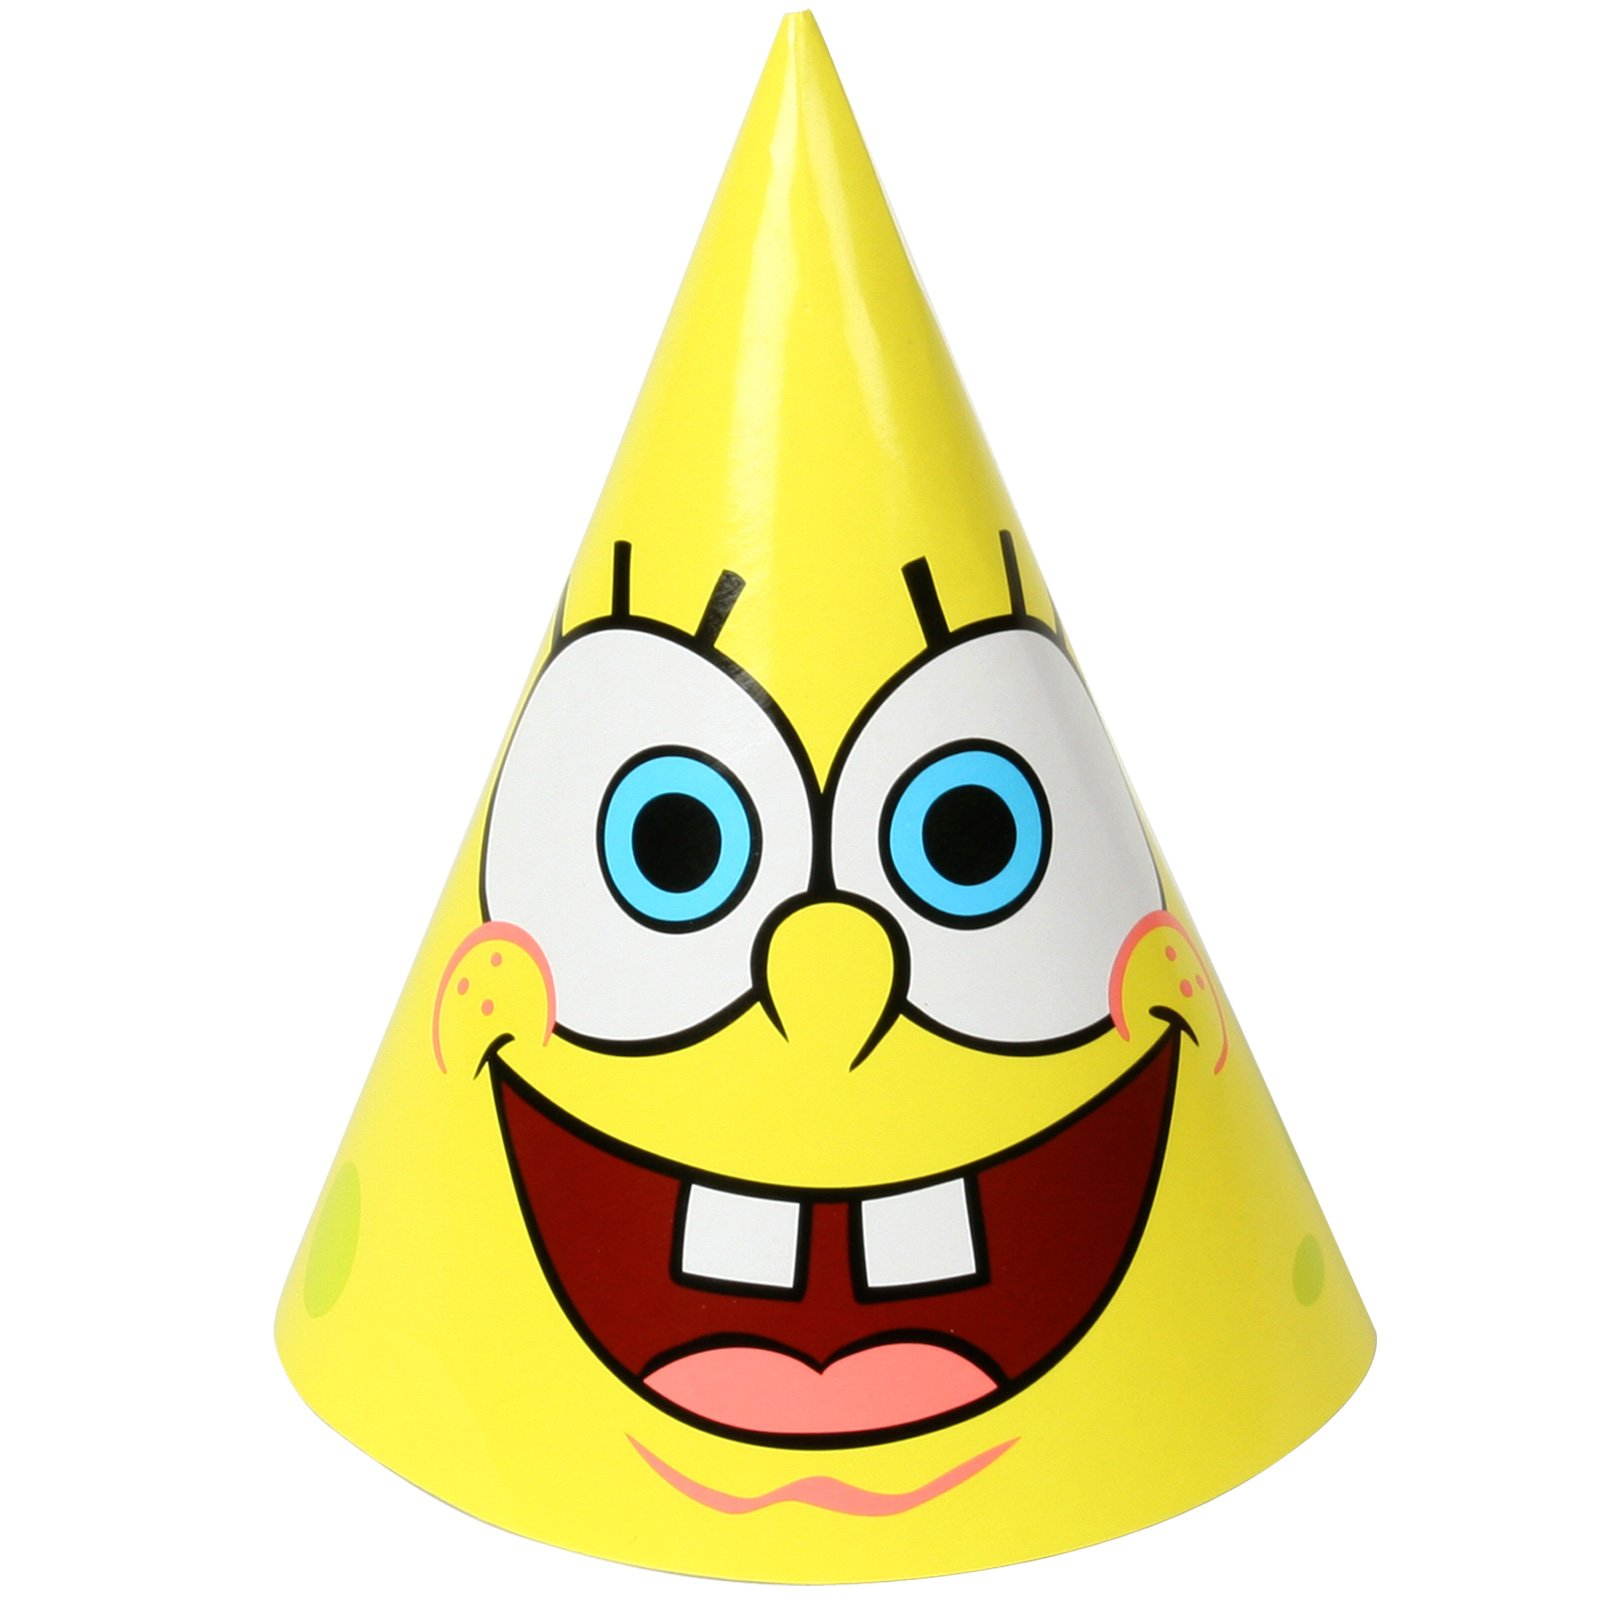 Best Birthday Hat Png 3532 Clipartion Com Collection of birthday hat png transparent (48). birthday hat png 3532 clipartion